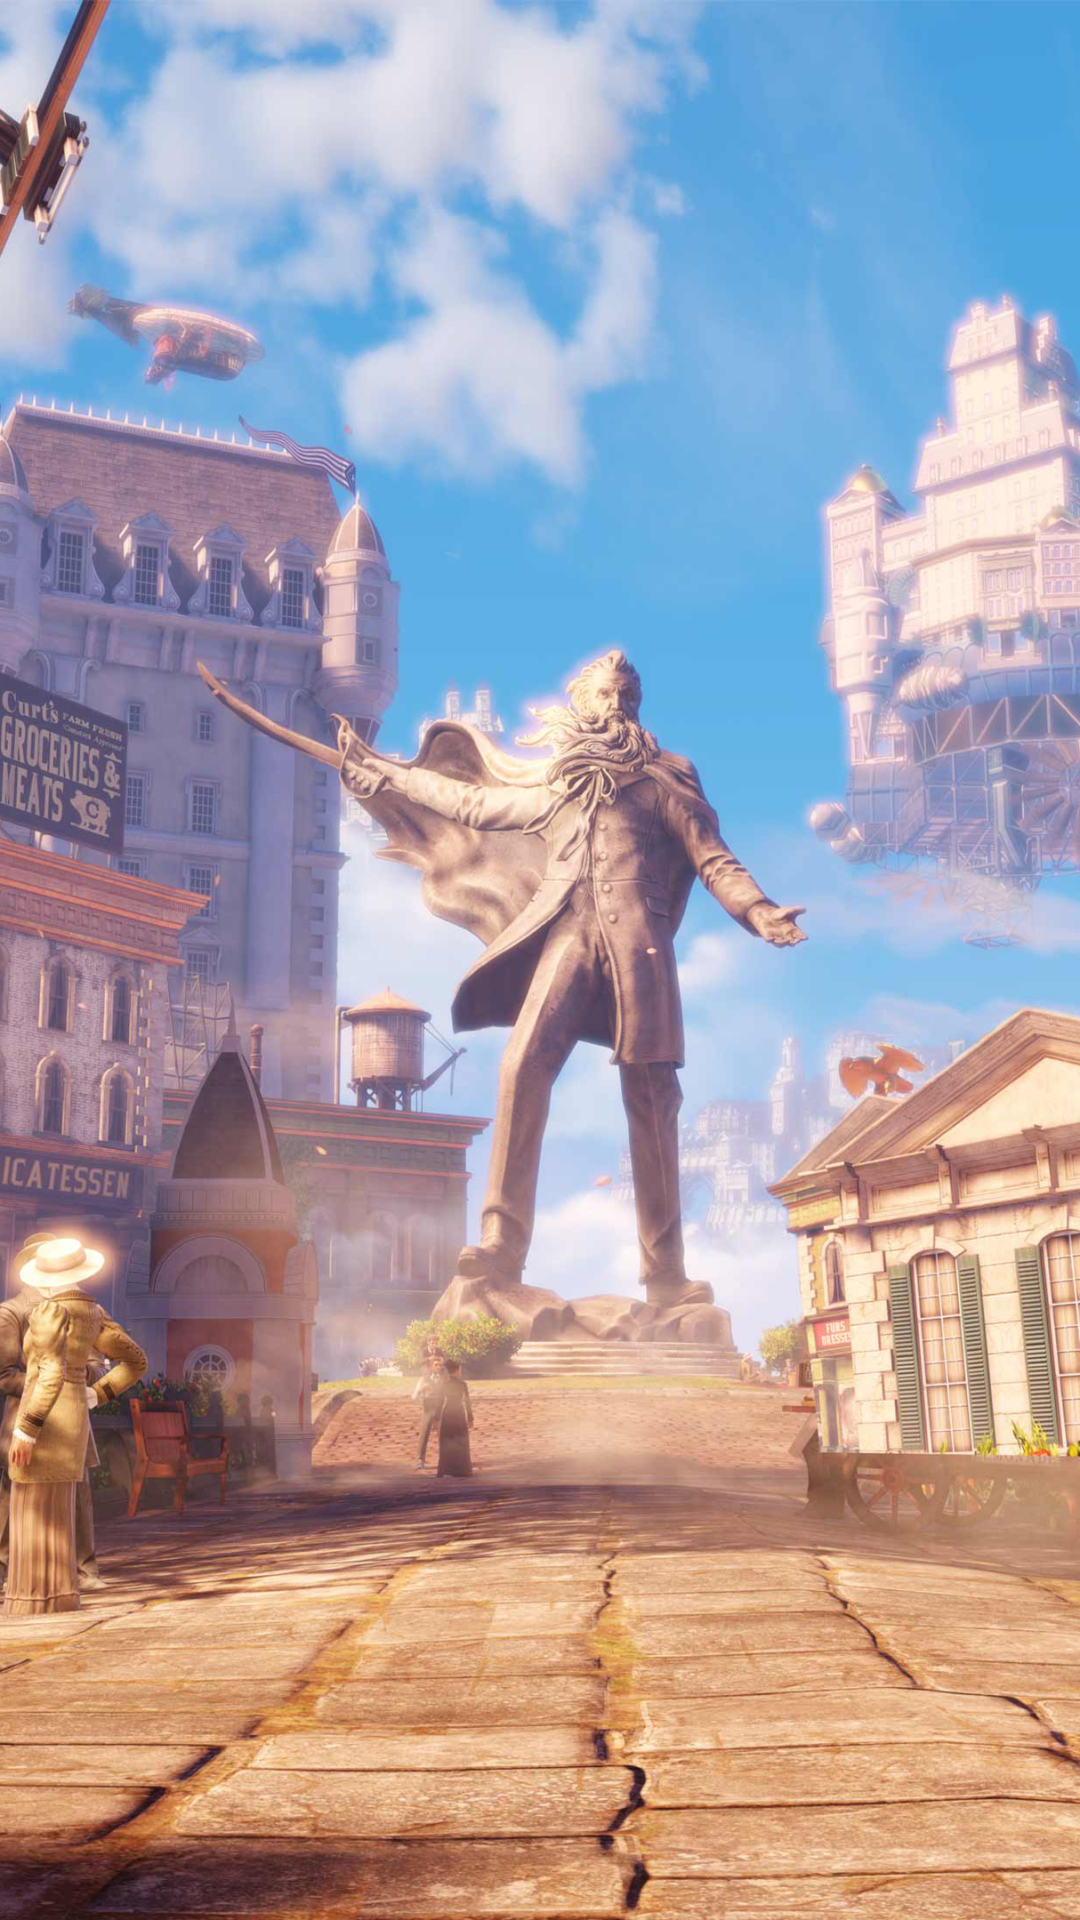 Video Game Bioshock Infinite 1080x1920 Mobile Wallpaper